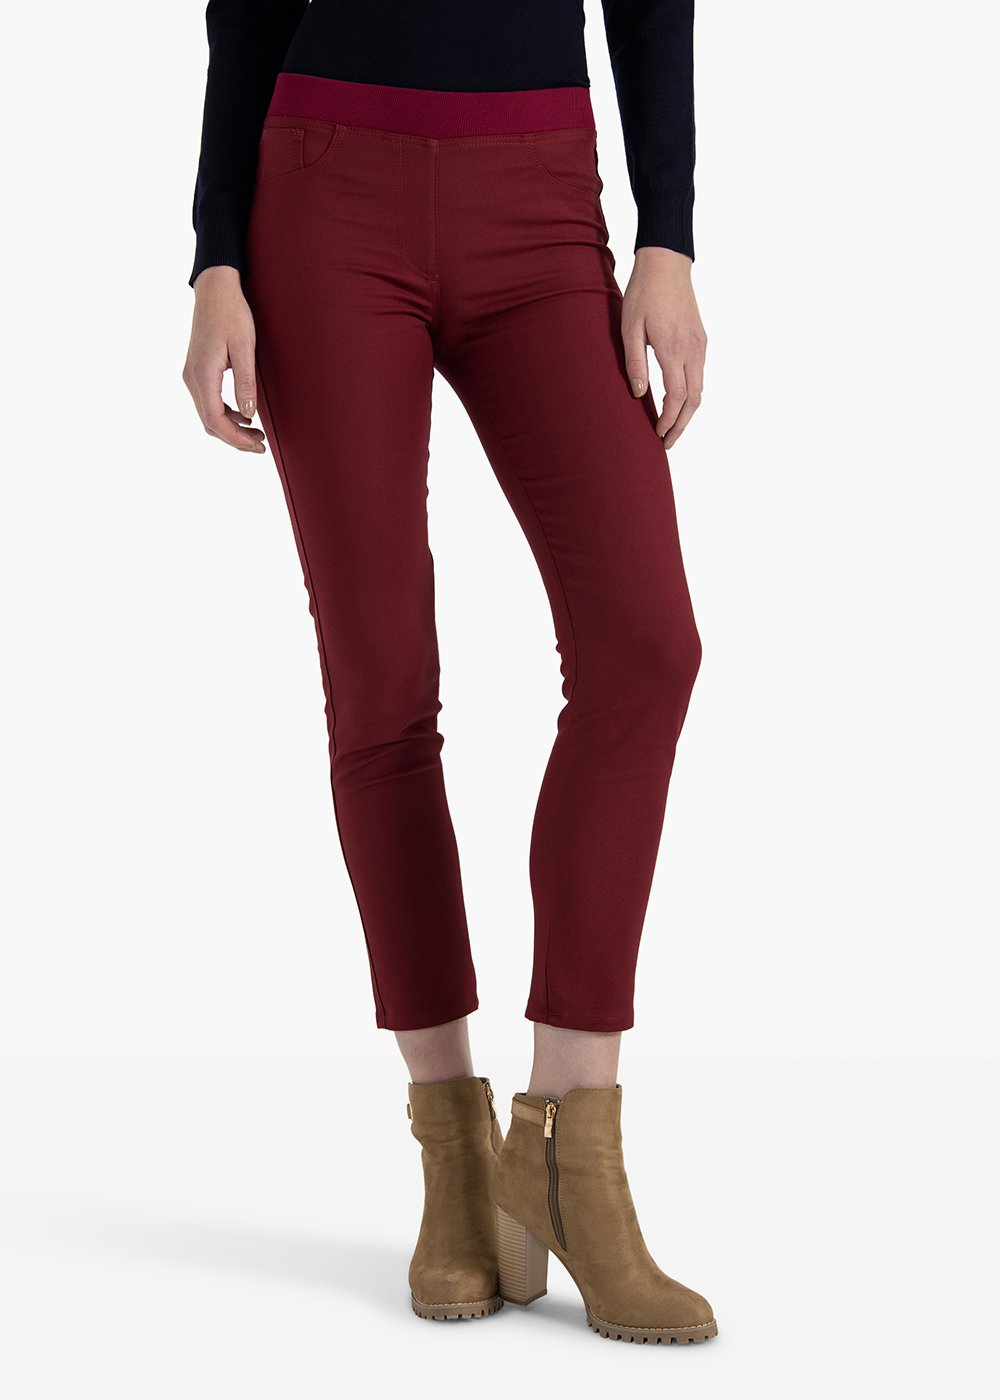 Trousers Kate in cherry-colored elastic cotton